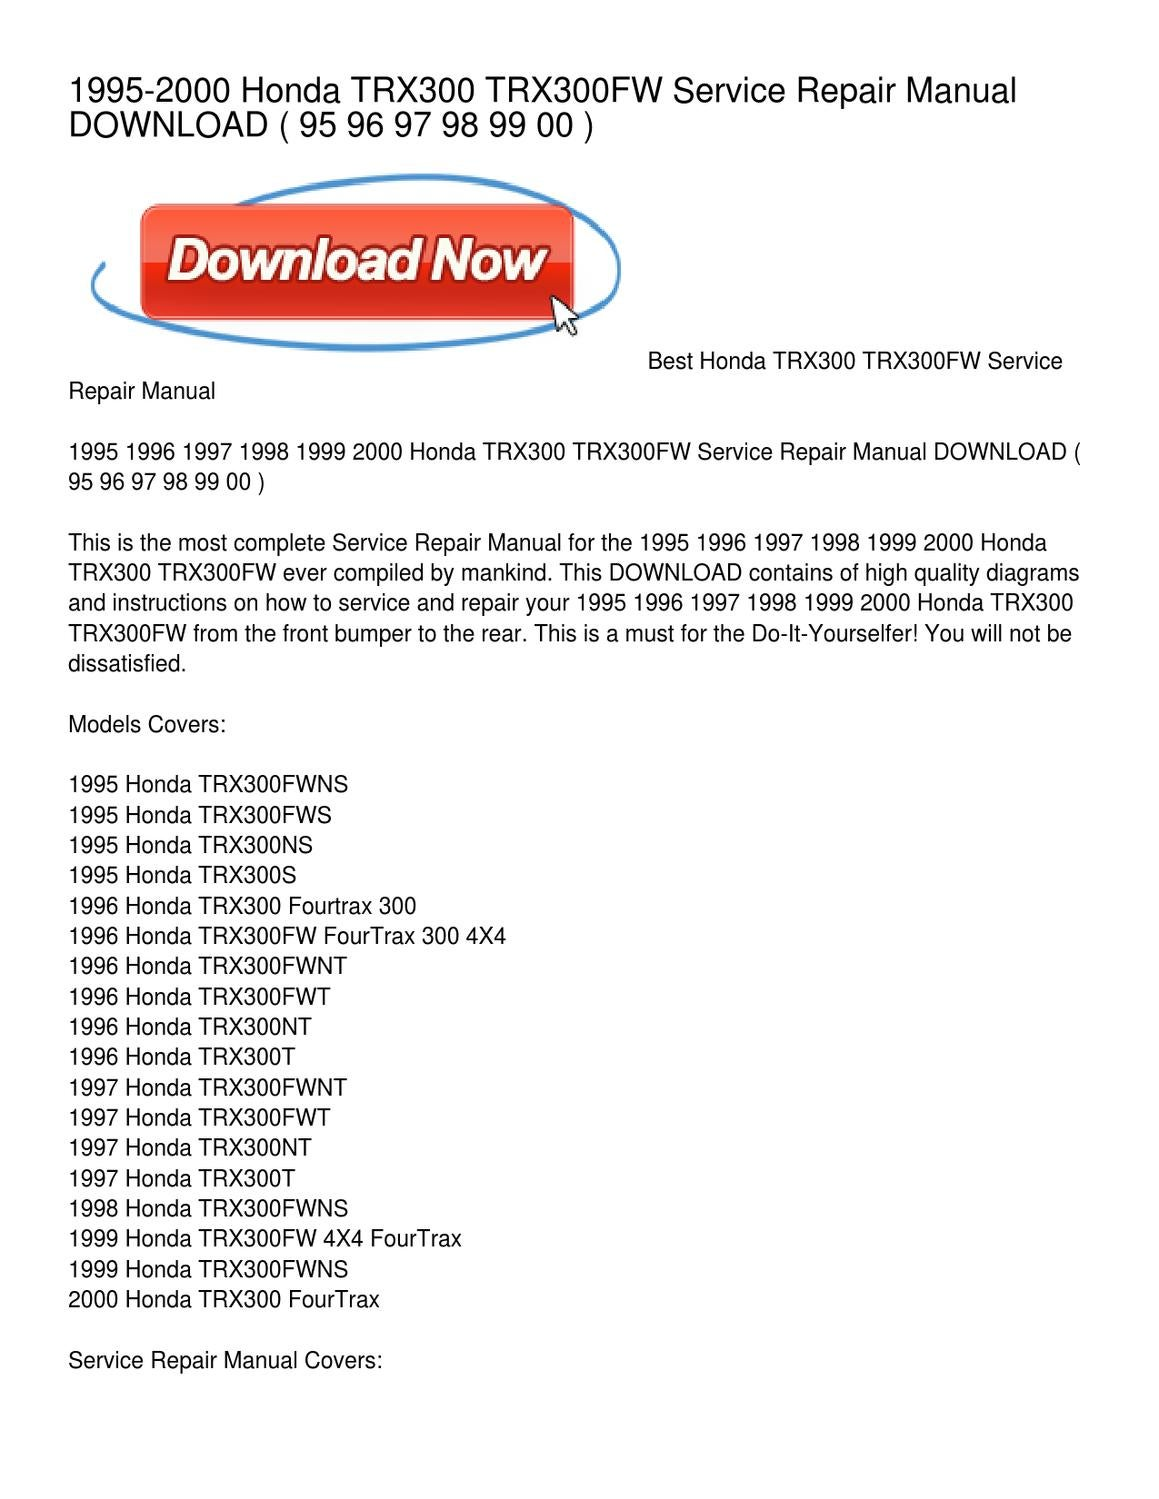 1995-2000 Honda TRX300 TRX300FW Service Repair Manual DOWNLOAD by Emma  Davis - issuu